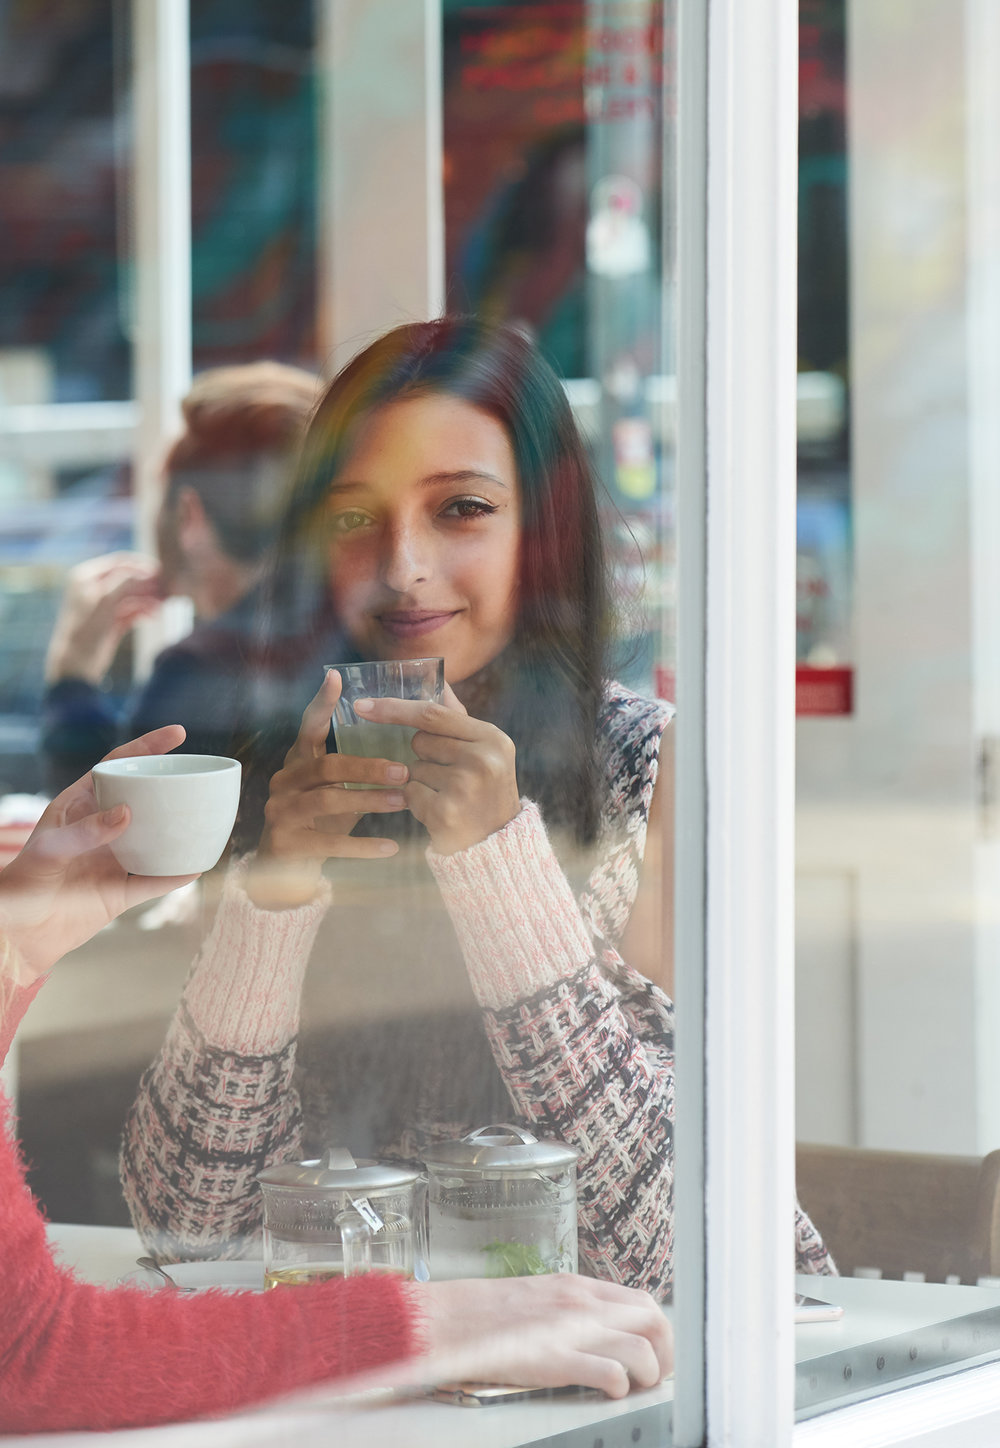 photograph of a girl  in a cafe window